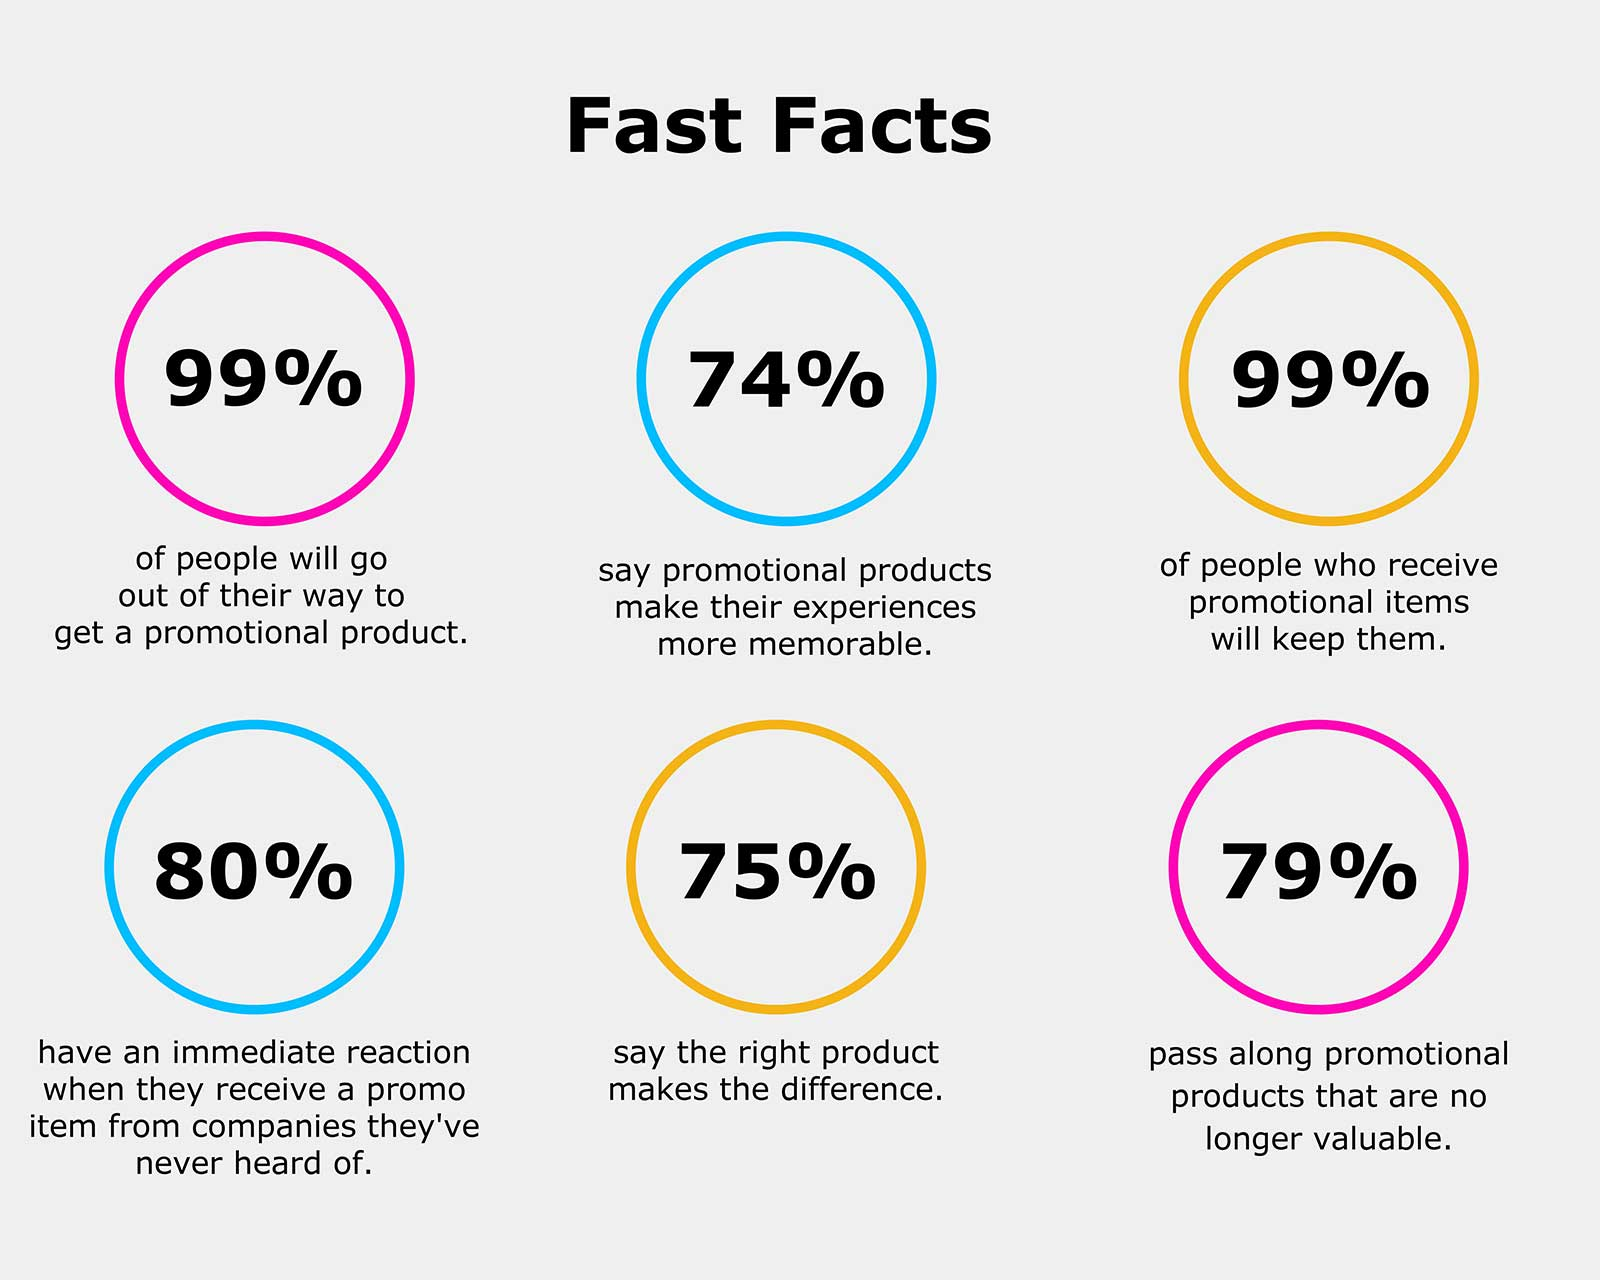 Fast Facts About Promotional Products